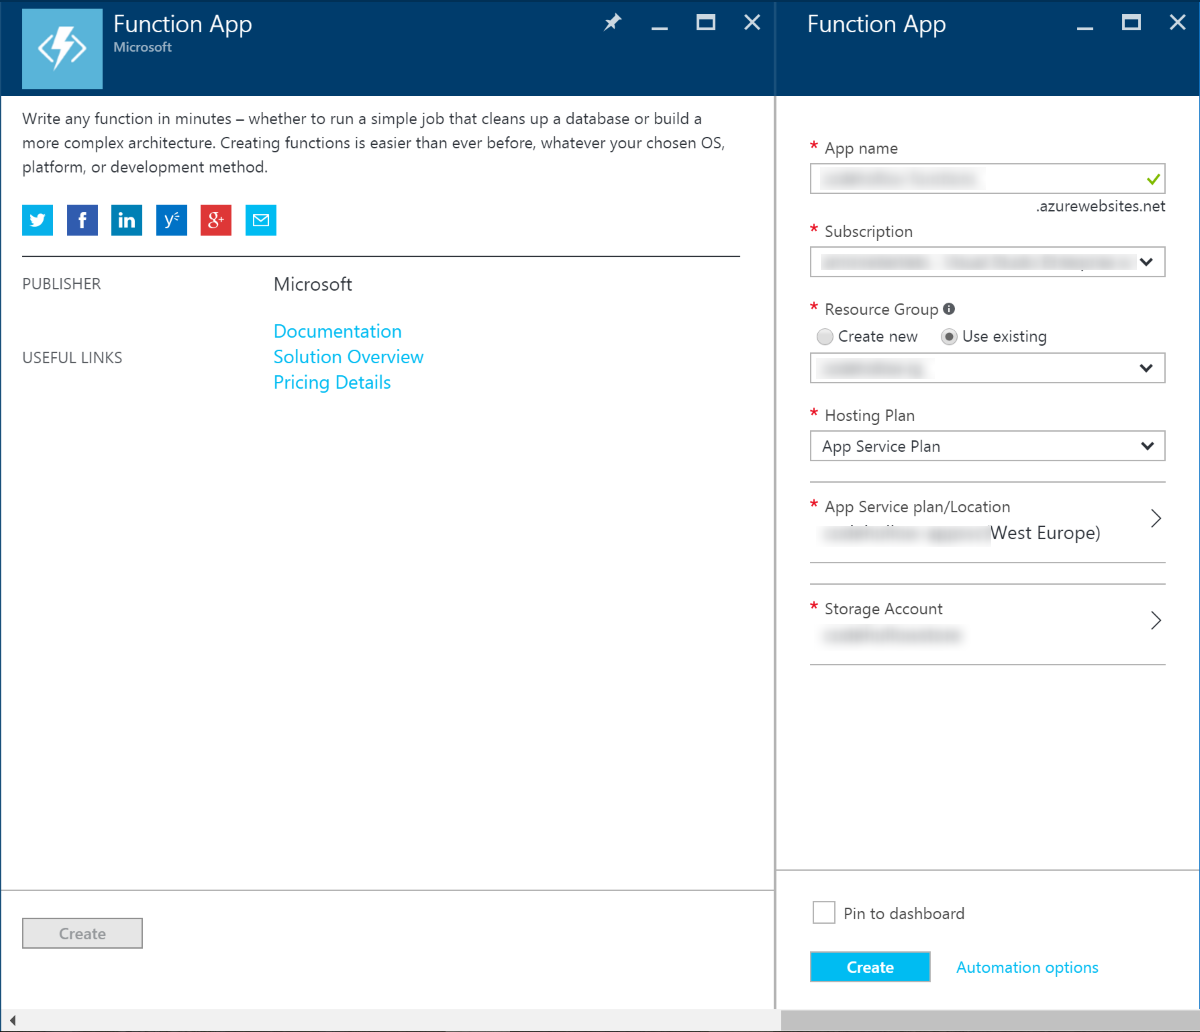 Working with Azure functions (part 1 - Powershell) | codehollow